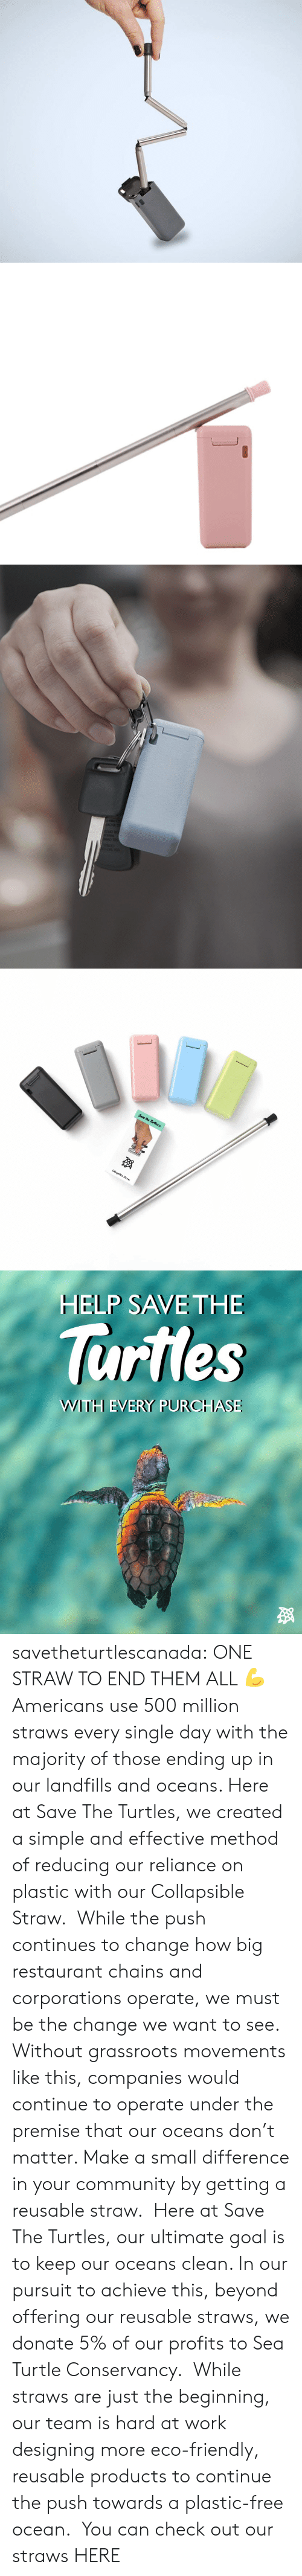 Hard At Work: Collapsible Strow   HELP SAVE THE  lurtles  WWITH EVERY PURCHASE savetheturtlescanada: ONE STRAW TO END THEM ALL💪 Americans use 500 million straws every single day with the majority of those ending up in our landfills and oceans. Here at Save The Turtles, we created a simple and effective method of reducing our reliance on plastic with our Collapsible Straw. While the push continues to change how big restaurant chains and corporations operate, we must be the change we want to see. Without grassroots movements like this, companies would continue to operate under the premise that our oceans don't matter. Make a small difference in your community by getting a reusable straw. Here at Save The Turtles, our ultimate goal is to keep our oceans clean. In our pursuit to achieve this, beyond offering our reusable straws, we donate 5% of our profits to Sea Turtle Conservancy. While straws are just the beginning, our team is hard at work designing more eco-friendly, reusable products to continue the push towards a plastic-free ocean. You can check out our straws HERE